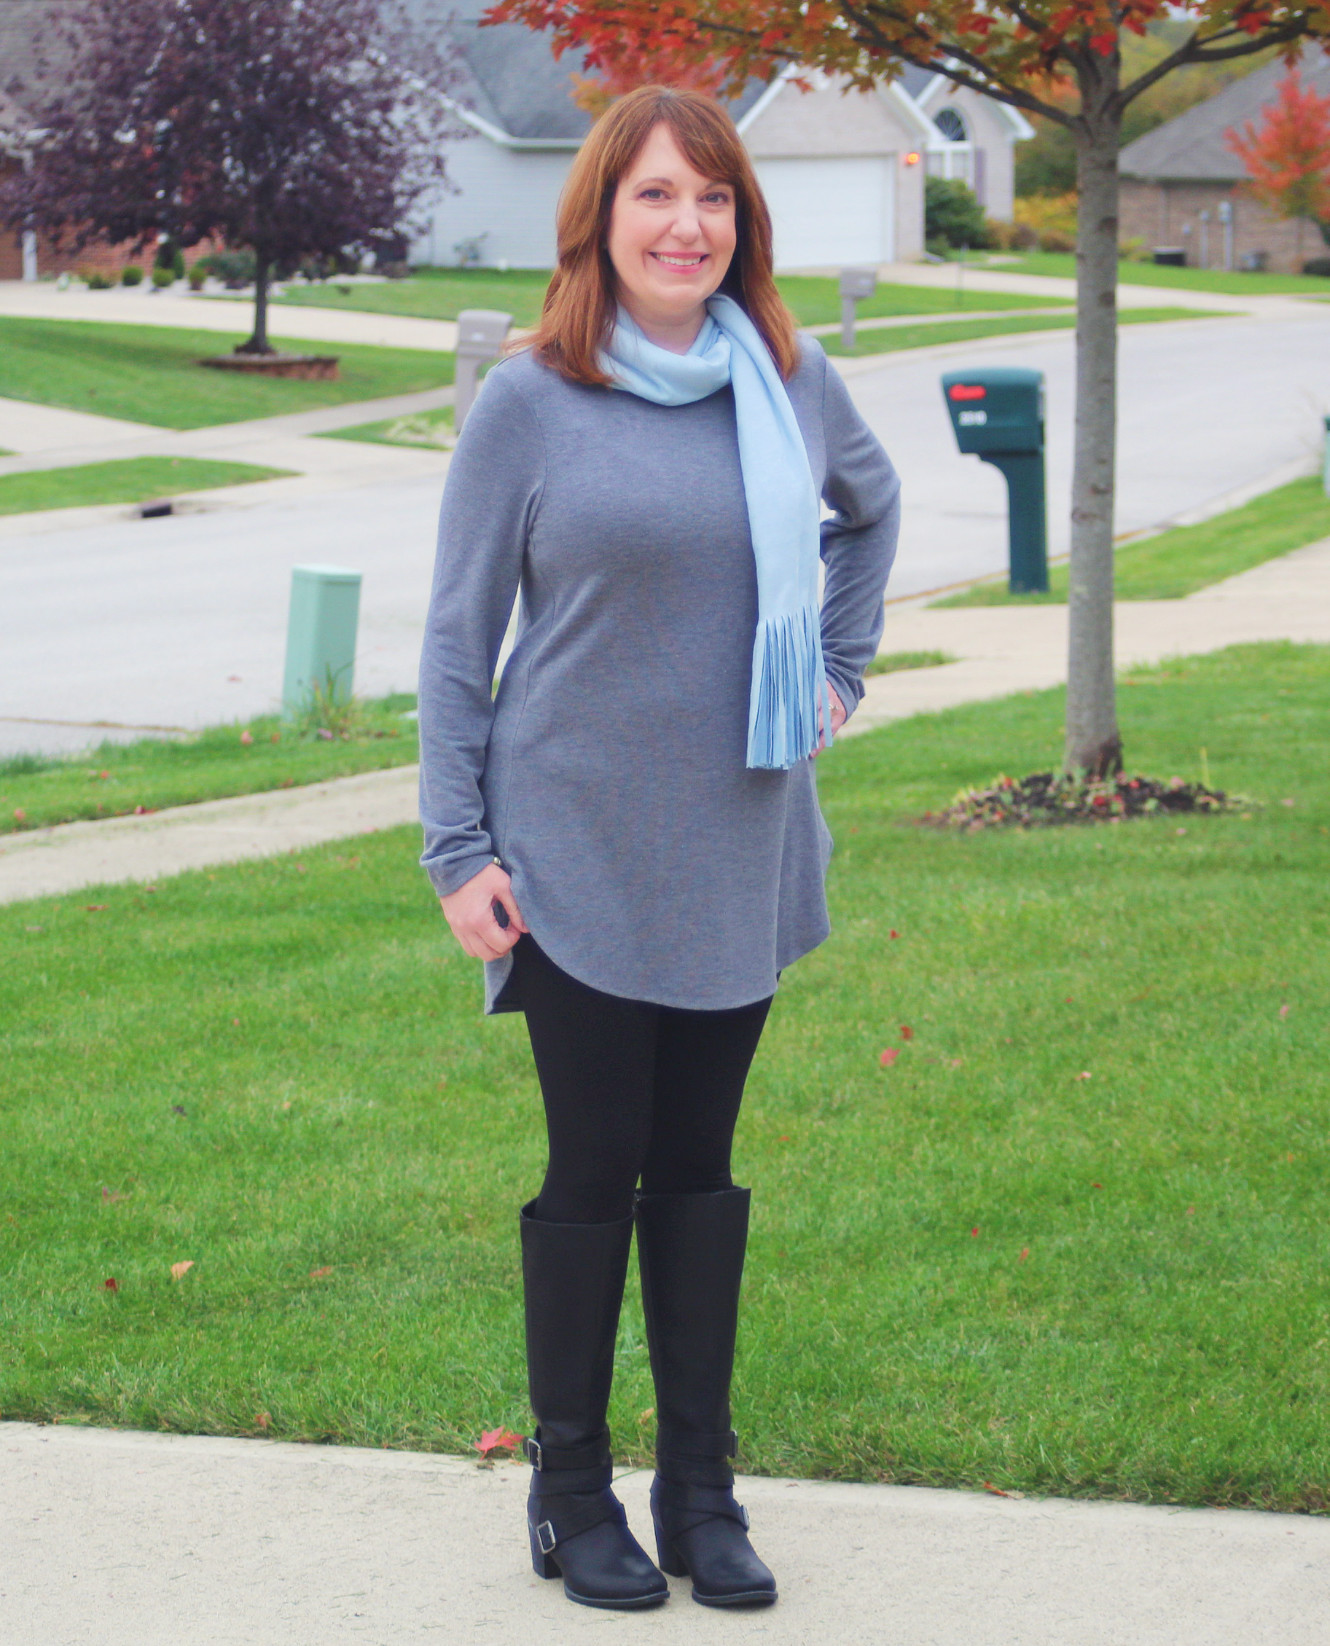 Gray Tunic Outfit